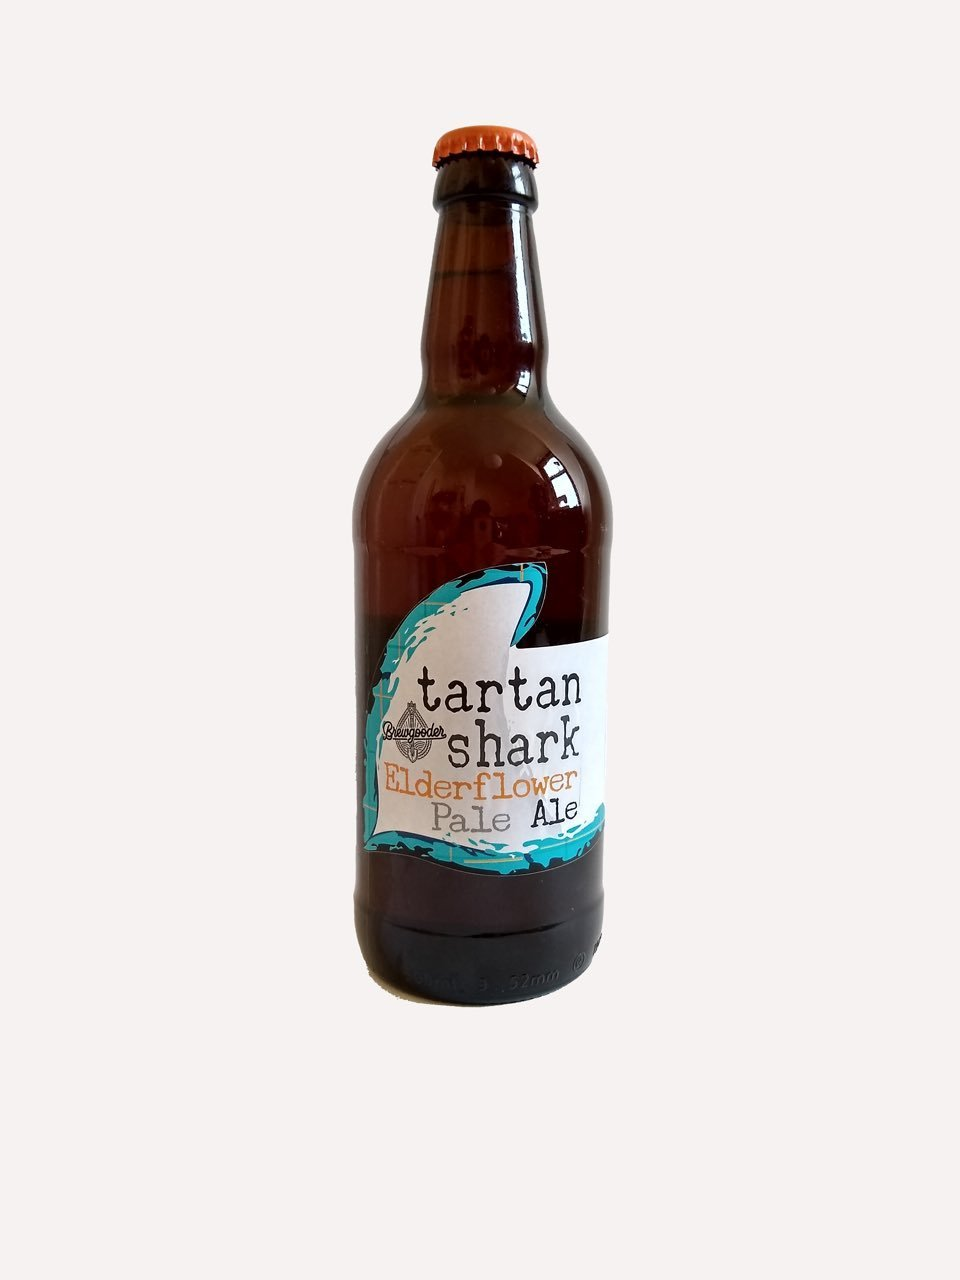 Tartan Shark Brewery - Elderflower Pale Ale (500ml) - Edinburgh Booze Delivery